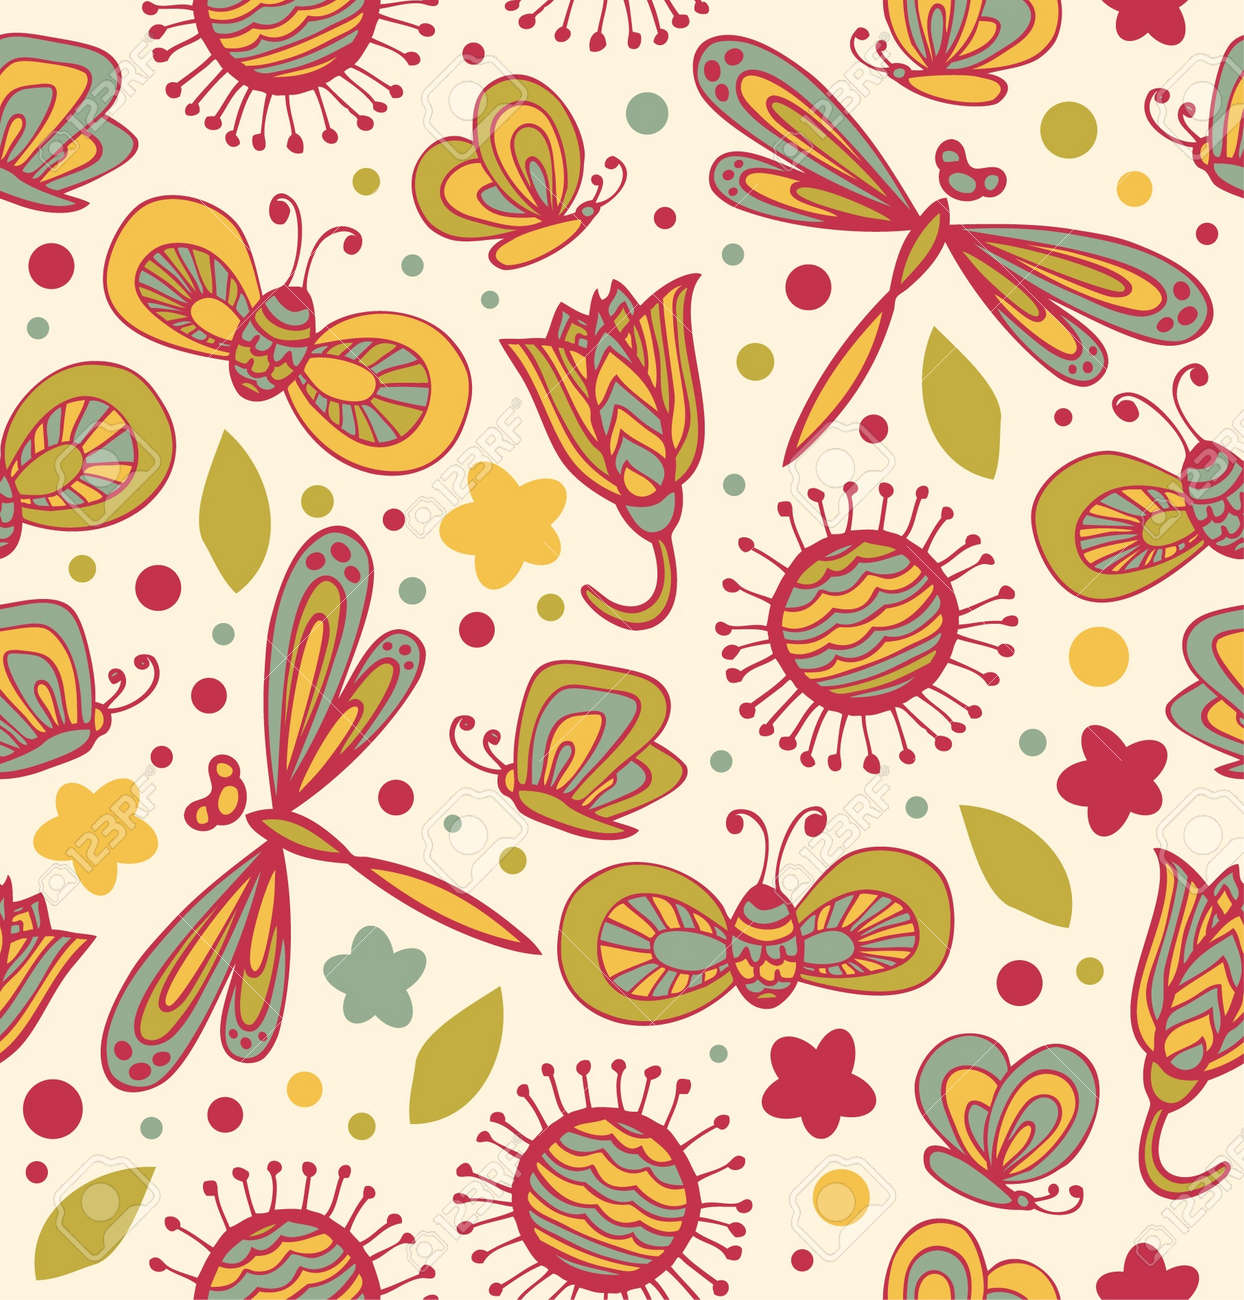 Cute floral pattern with flowers, dragonflies and butterflies  Ornate fabric seamless texture  Doodle childish lace background Stock Vector - 17210175